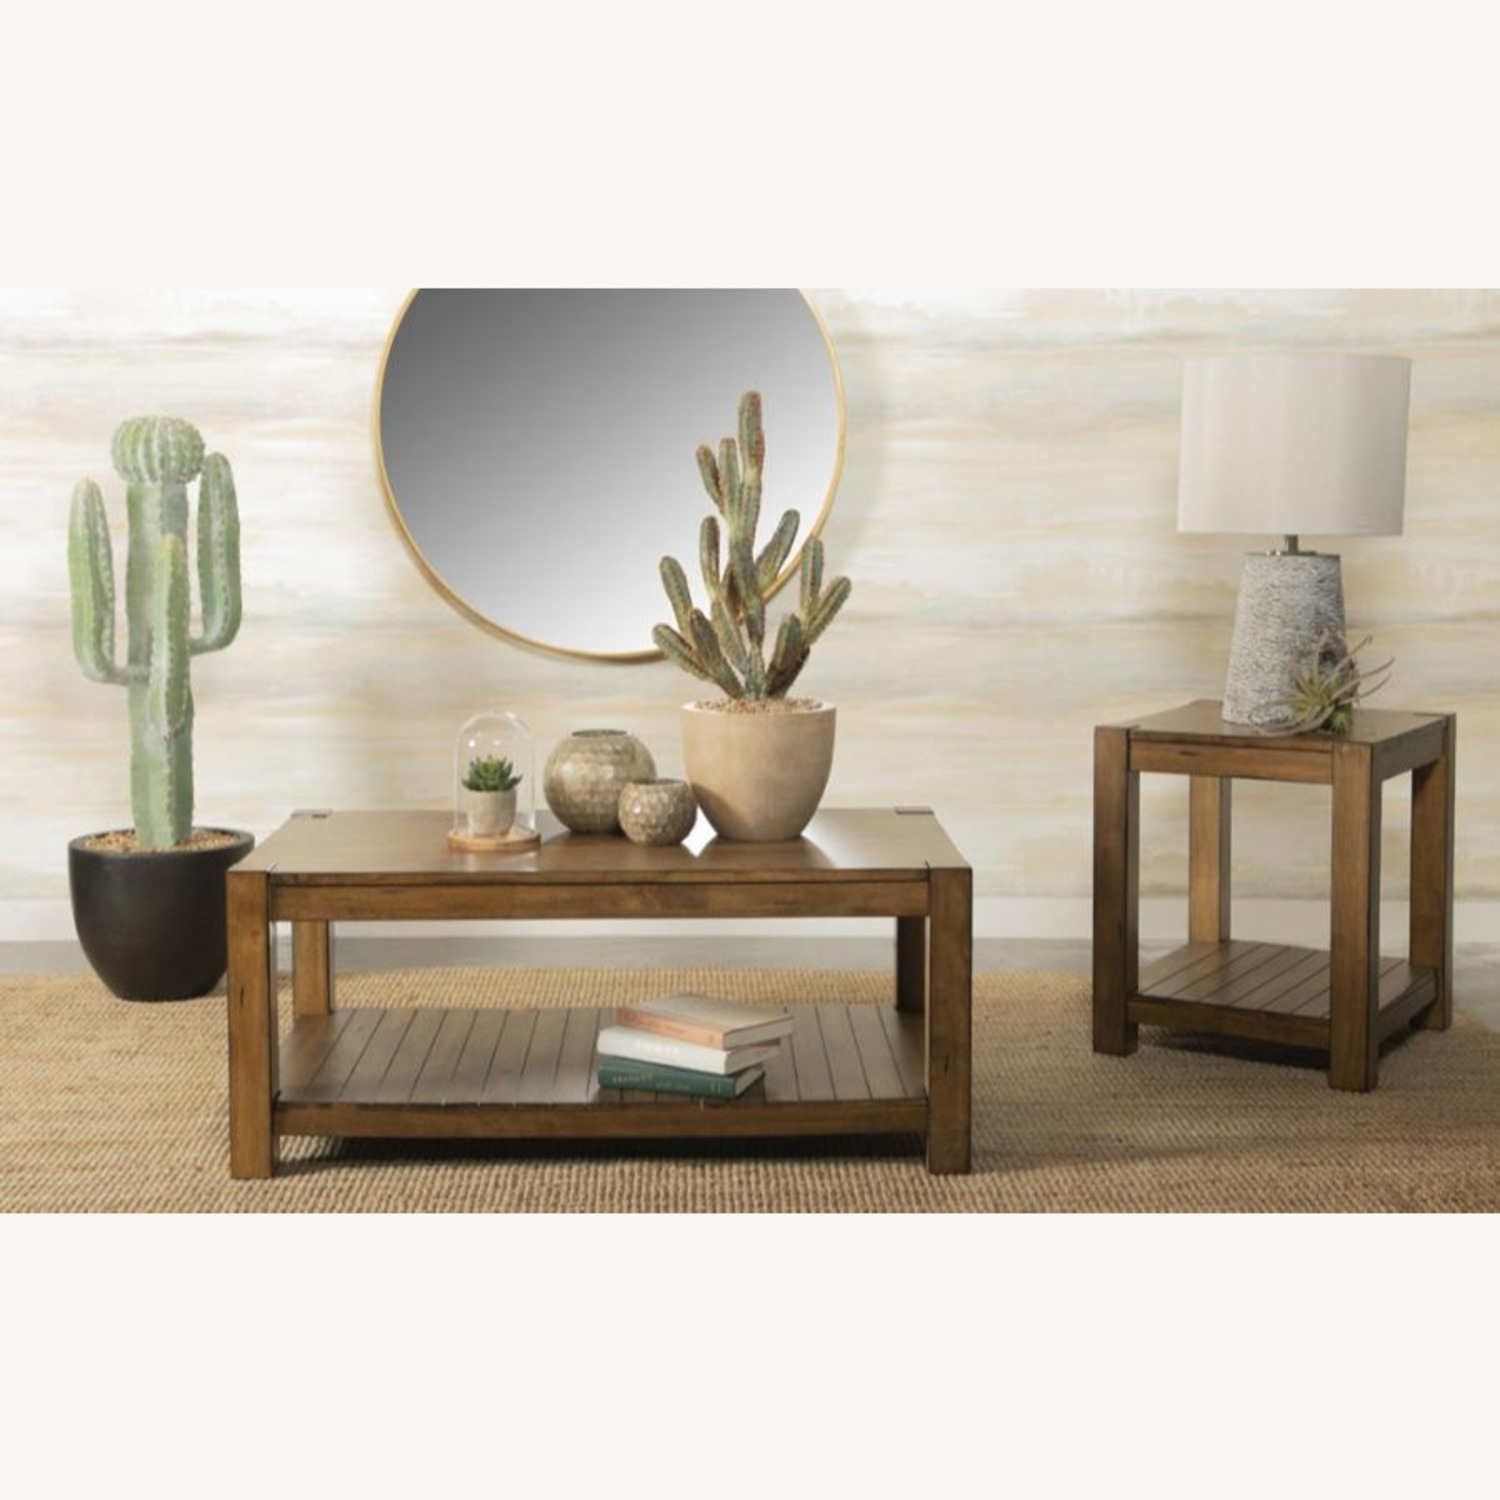 End Table In Solid Wood Rustic Brown Finish - image-3